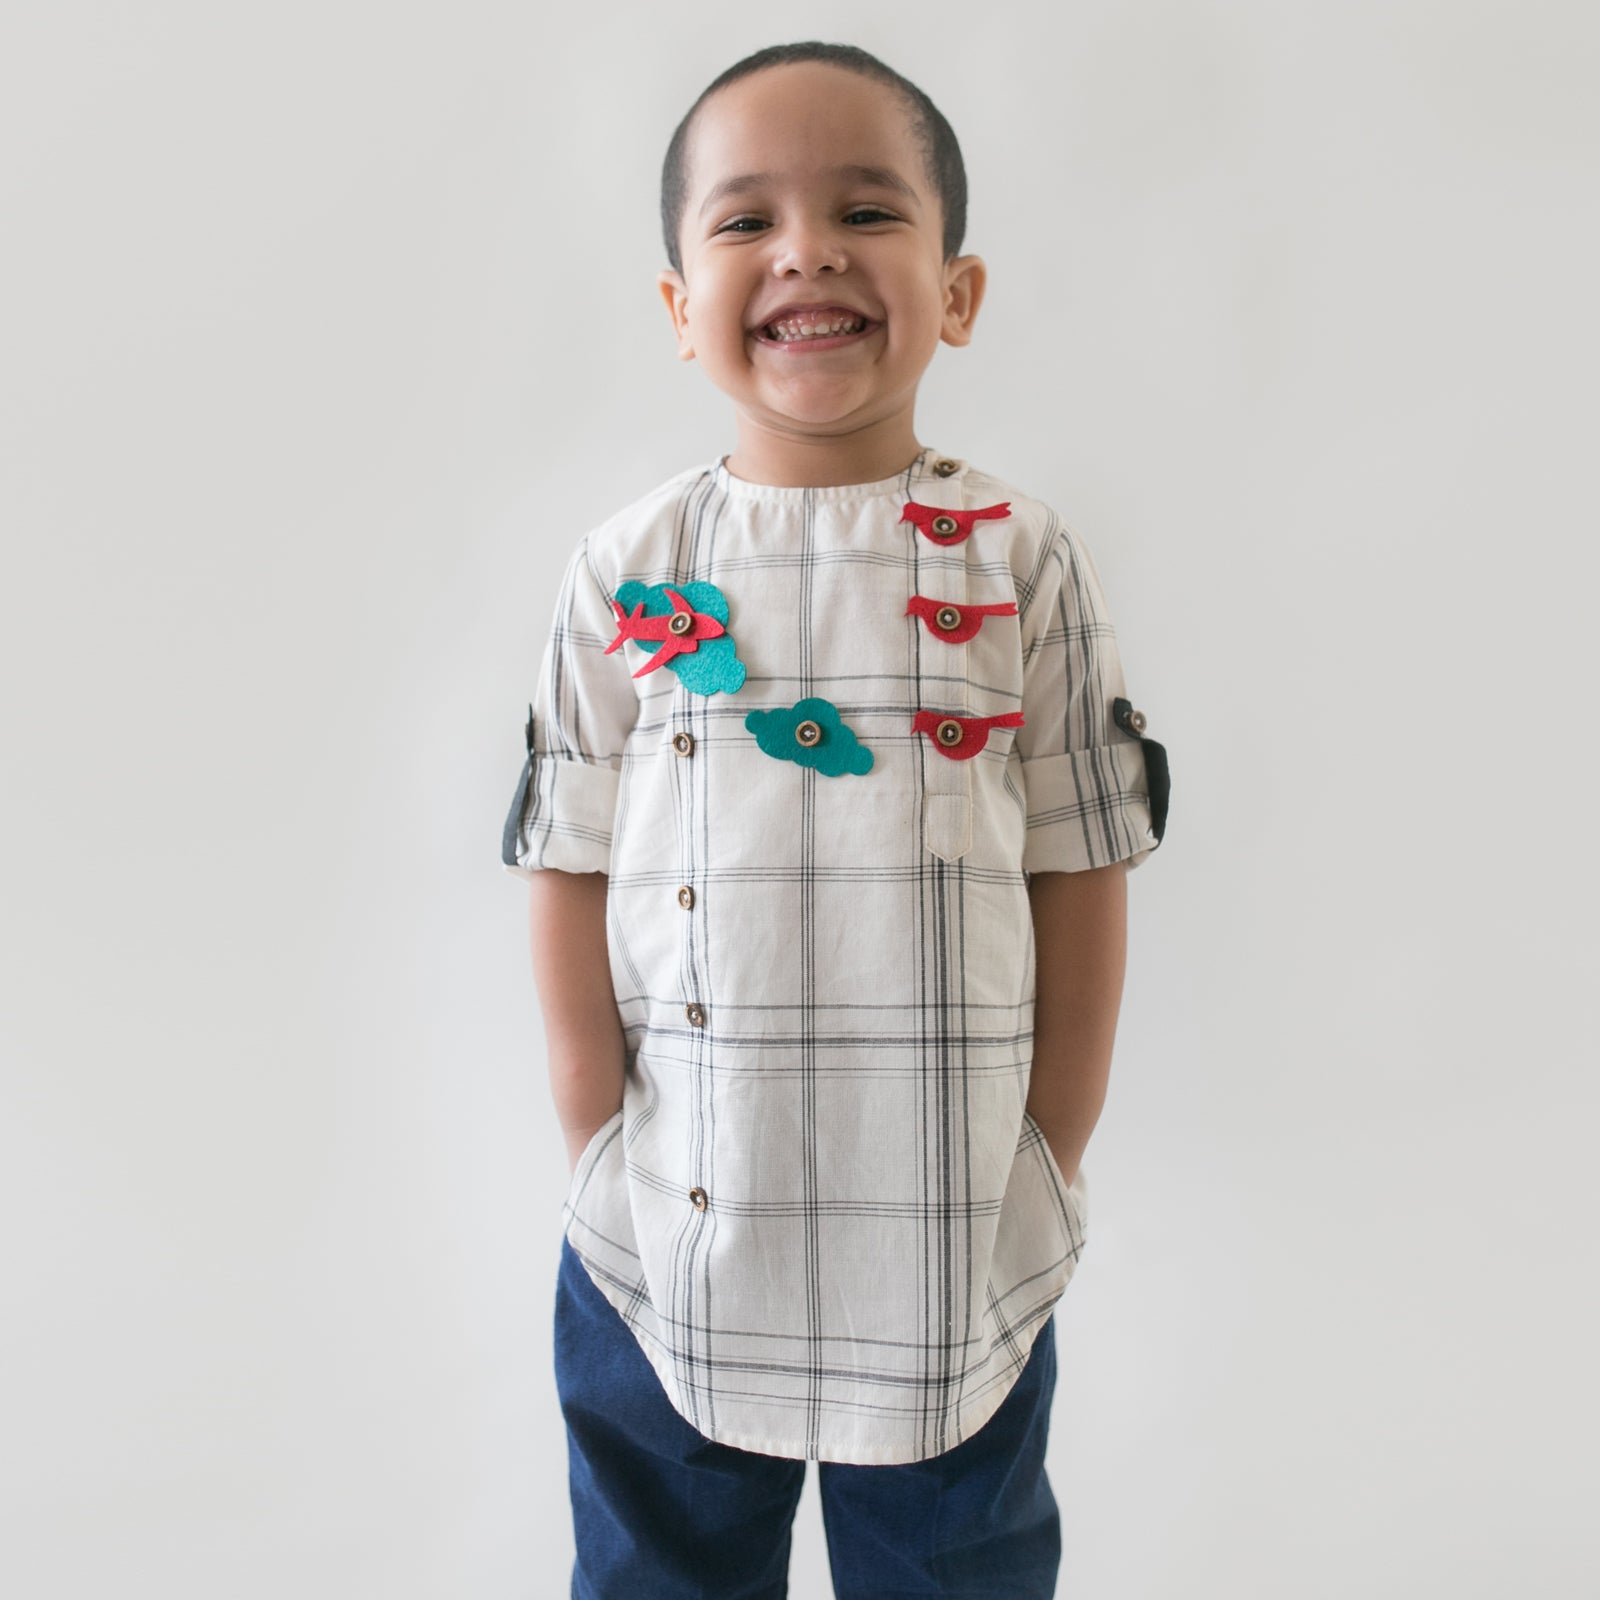 Boy White Checks Shirt With Felt Toys